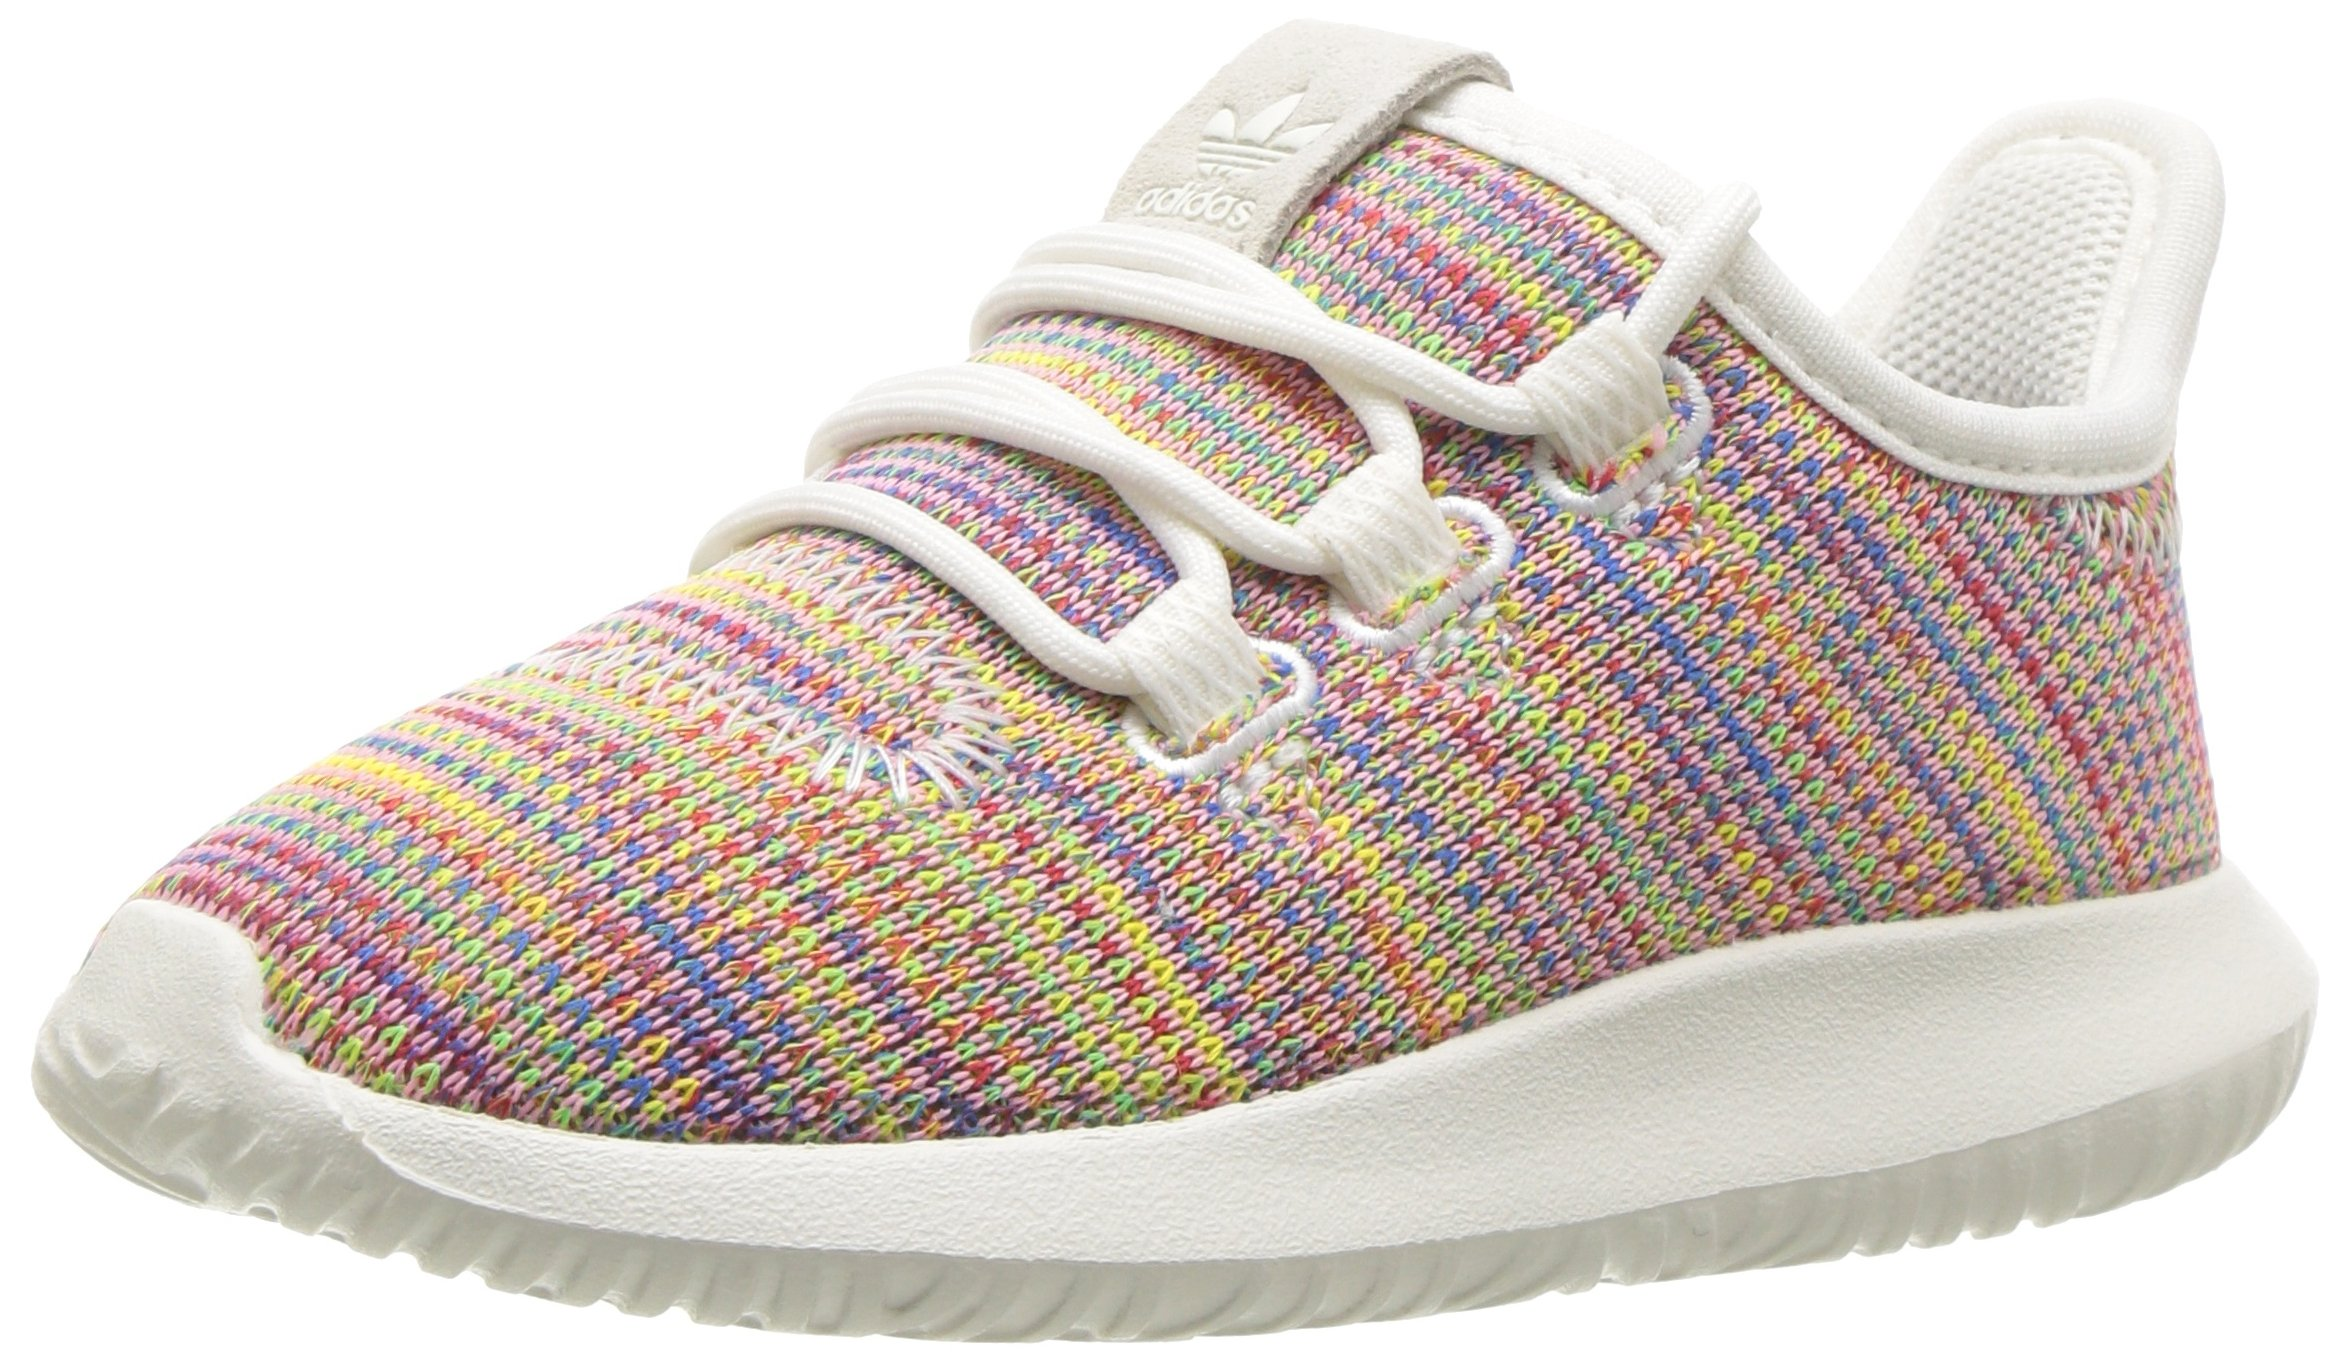 adidas Originals Unisex Tubular Shadow, White Blue, 1 M US Little Kid